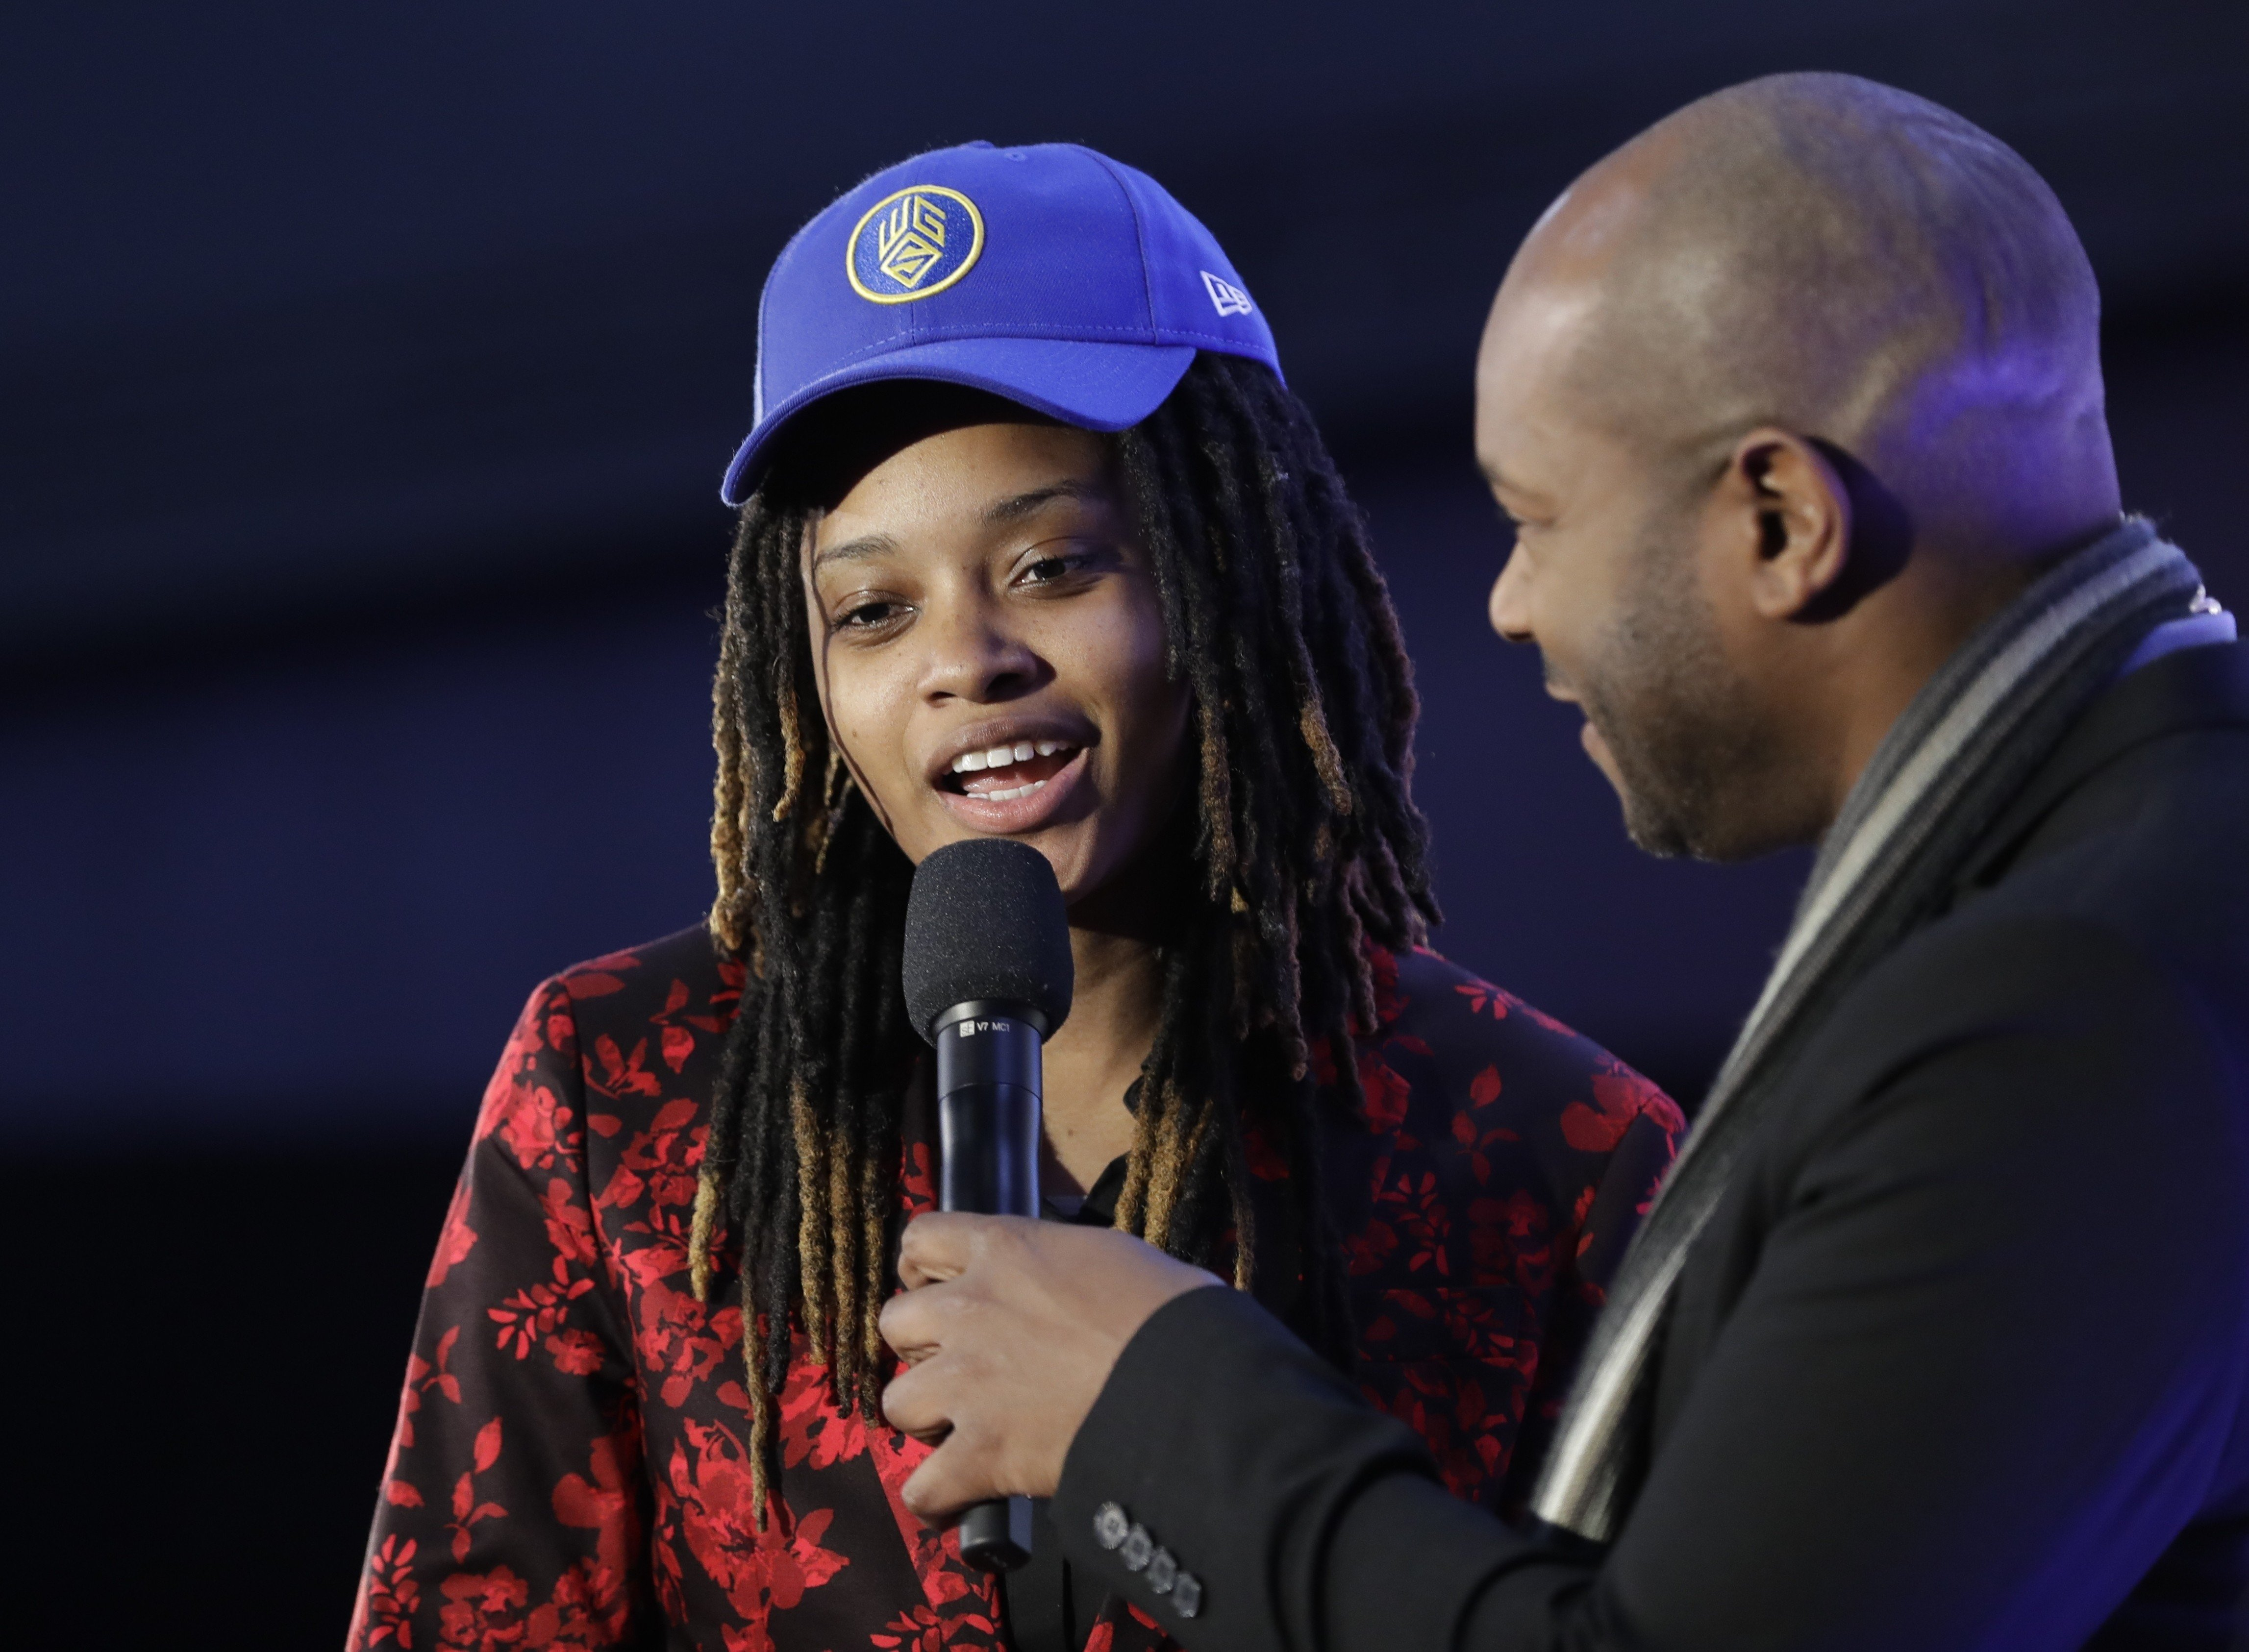 eff56b39ea4 First female NBA 2K pro drafted – Chiquita Evans joins Golden State  Warriors e-sports team and hopes to play against Steph Curry